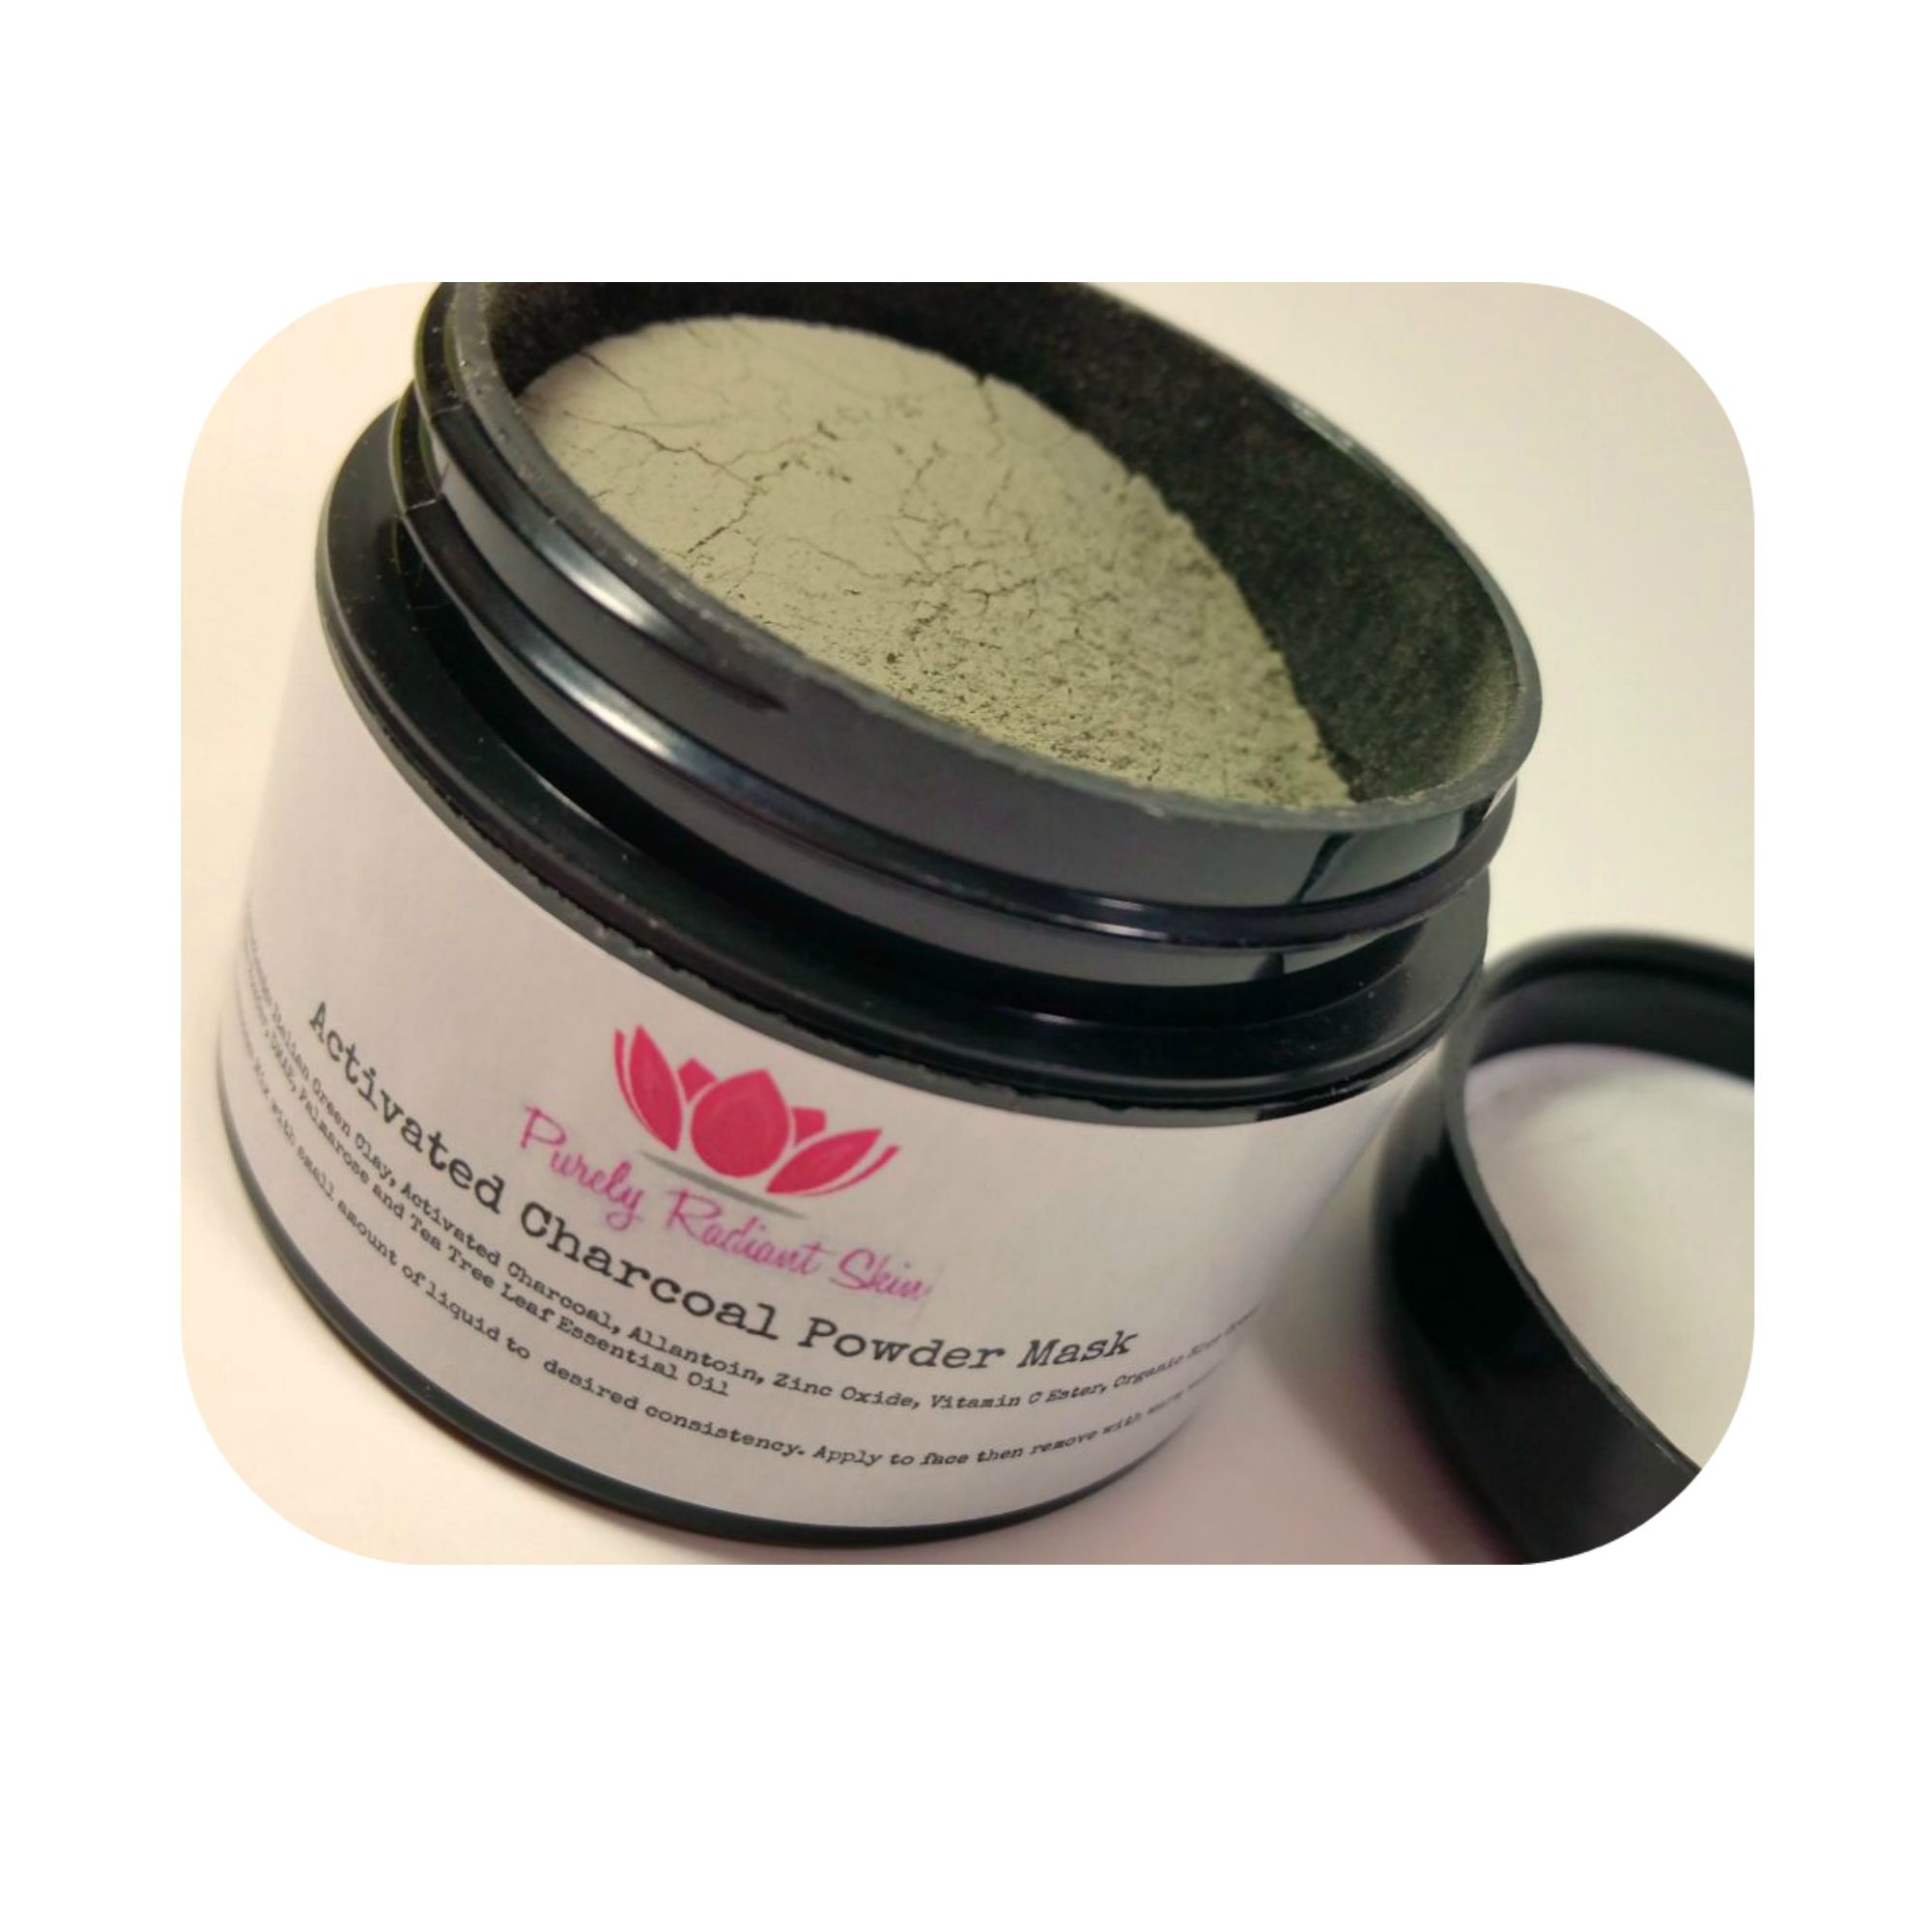 Purely Radiant Skin Review (Activated Charcoal Powder Mask) #organic #skincare #review